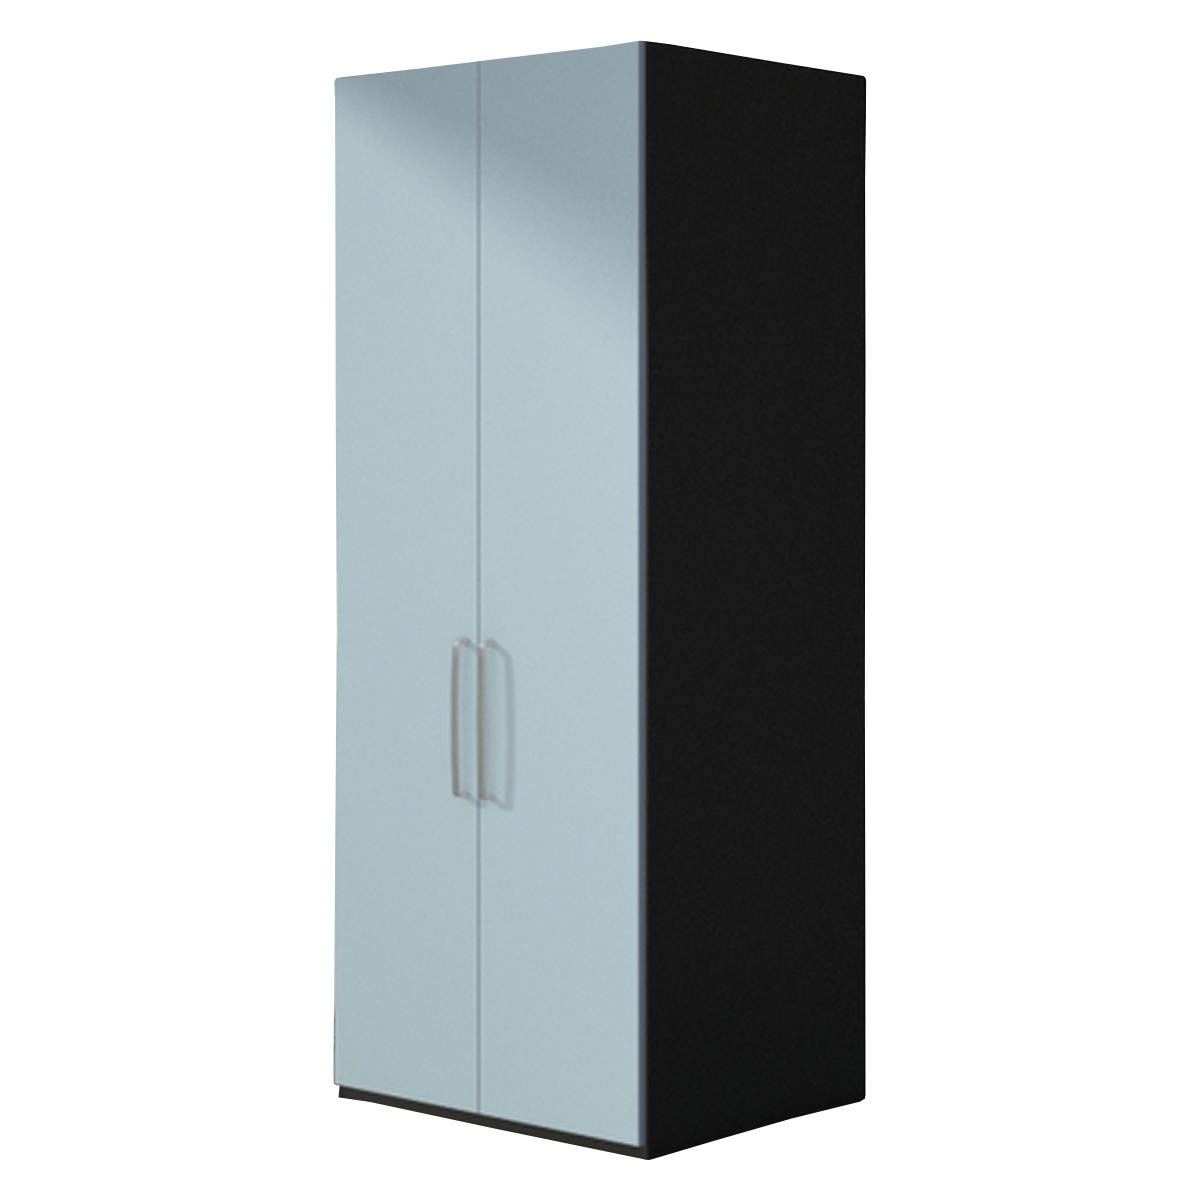 Kleiderschrank Yourjoyce Rauch Select Your Joyce Pastell Ice Blue